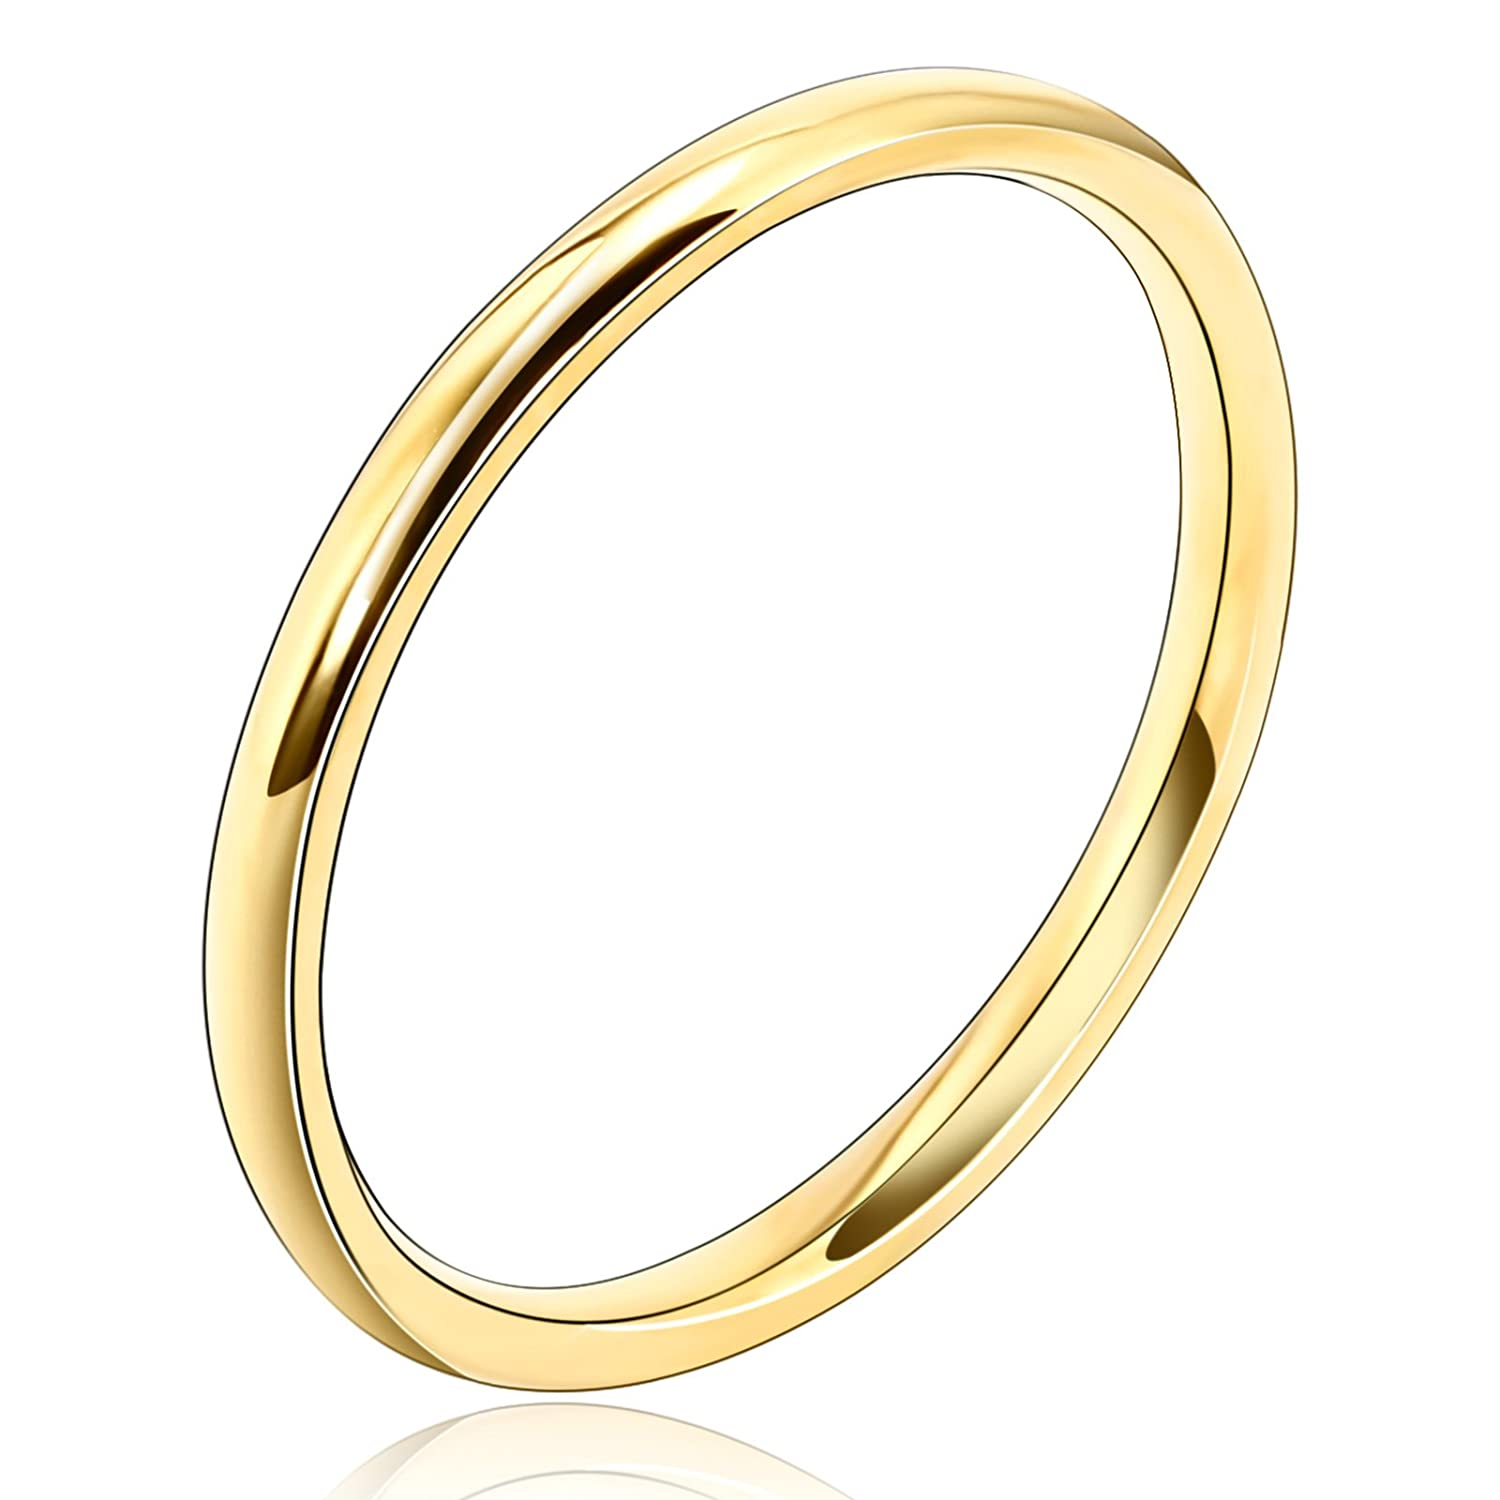 Adisaer His and Hers Ring Wedding Bands Silver Plated 2MM Width Comfort Fit Rings for Couple Size 7-12